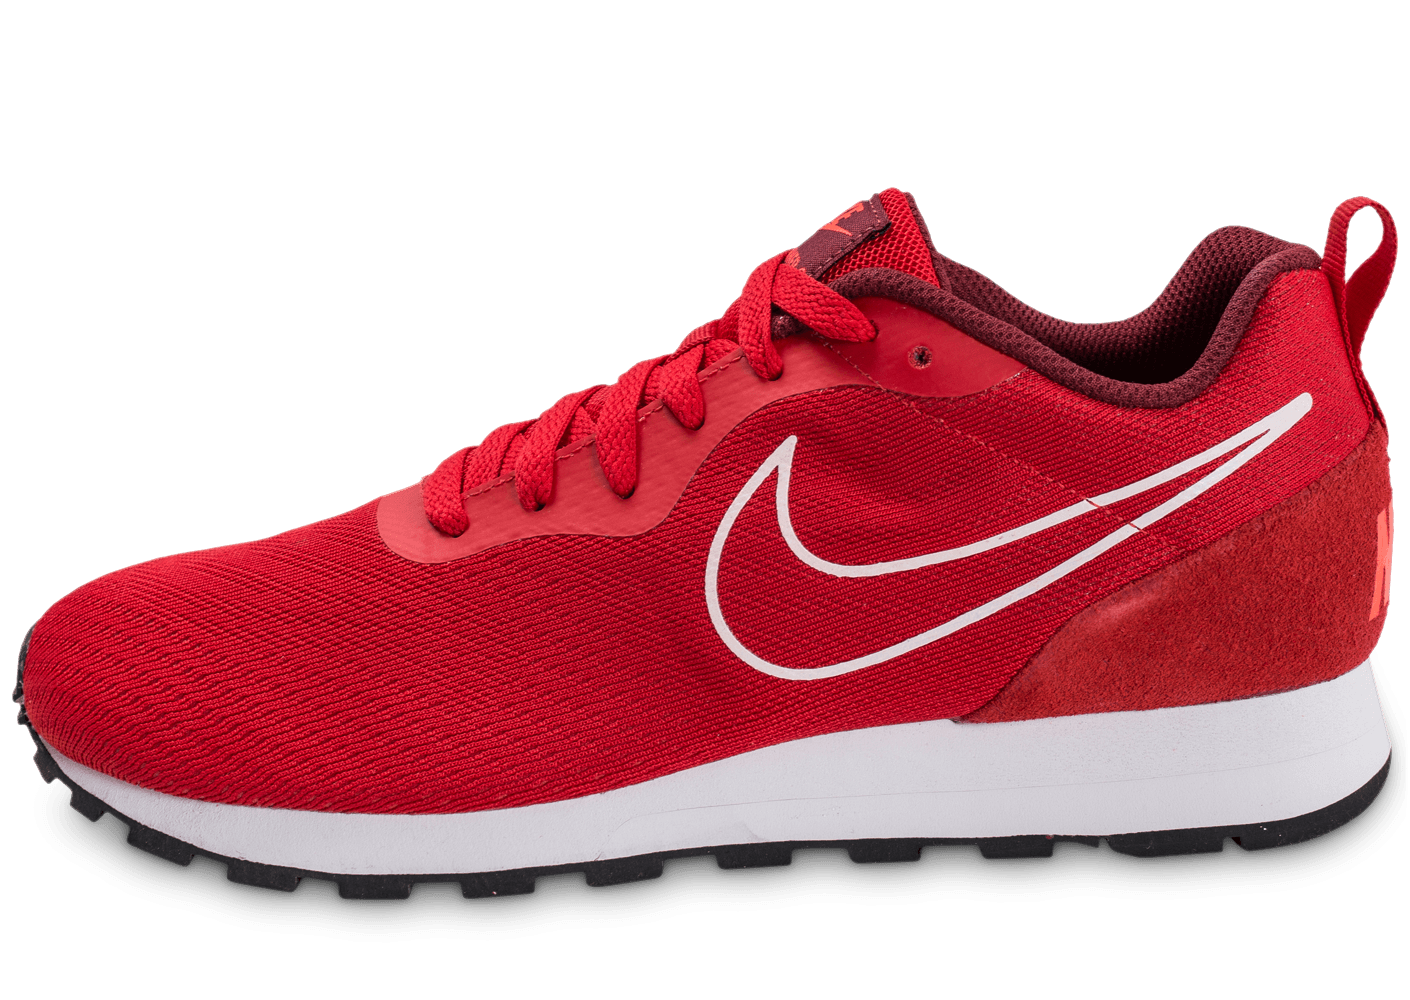 Md Nike Breathe 2 Rouge Runner rBeWoCdx